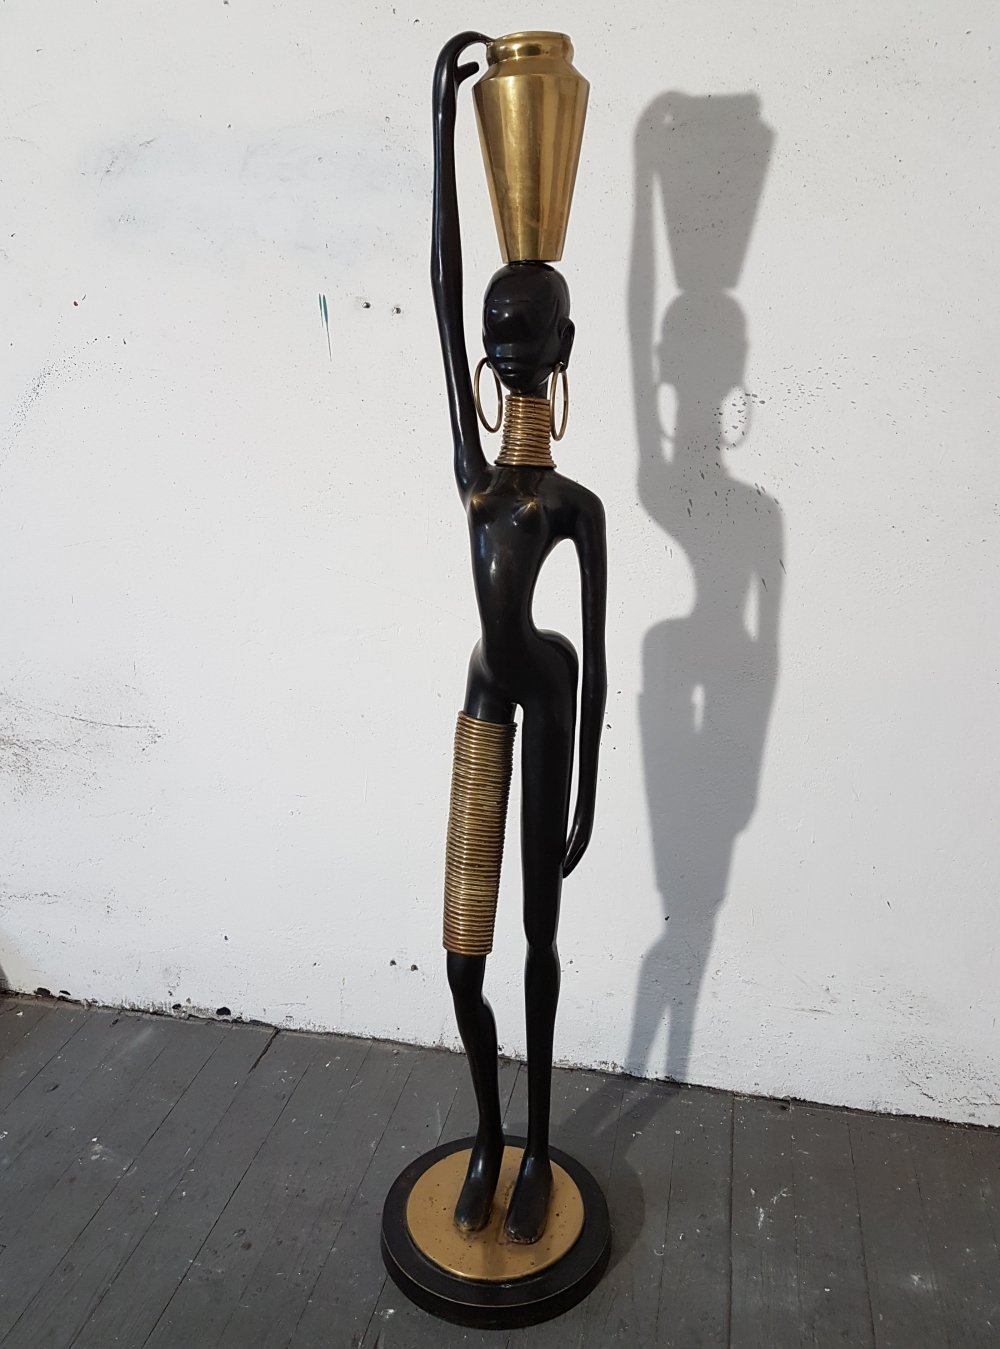 Life size bronze African Woman Sculpture from Austria, 1950s